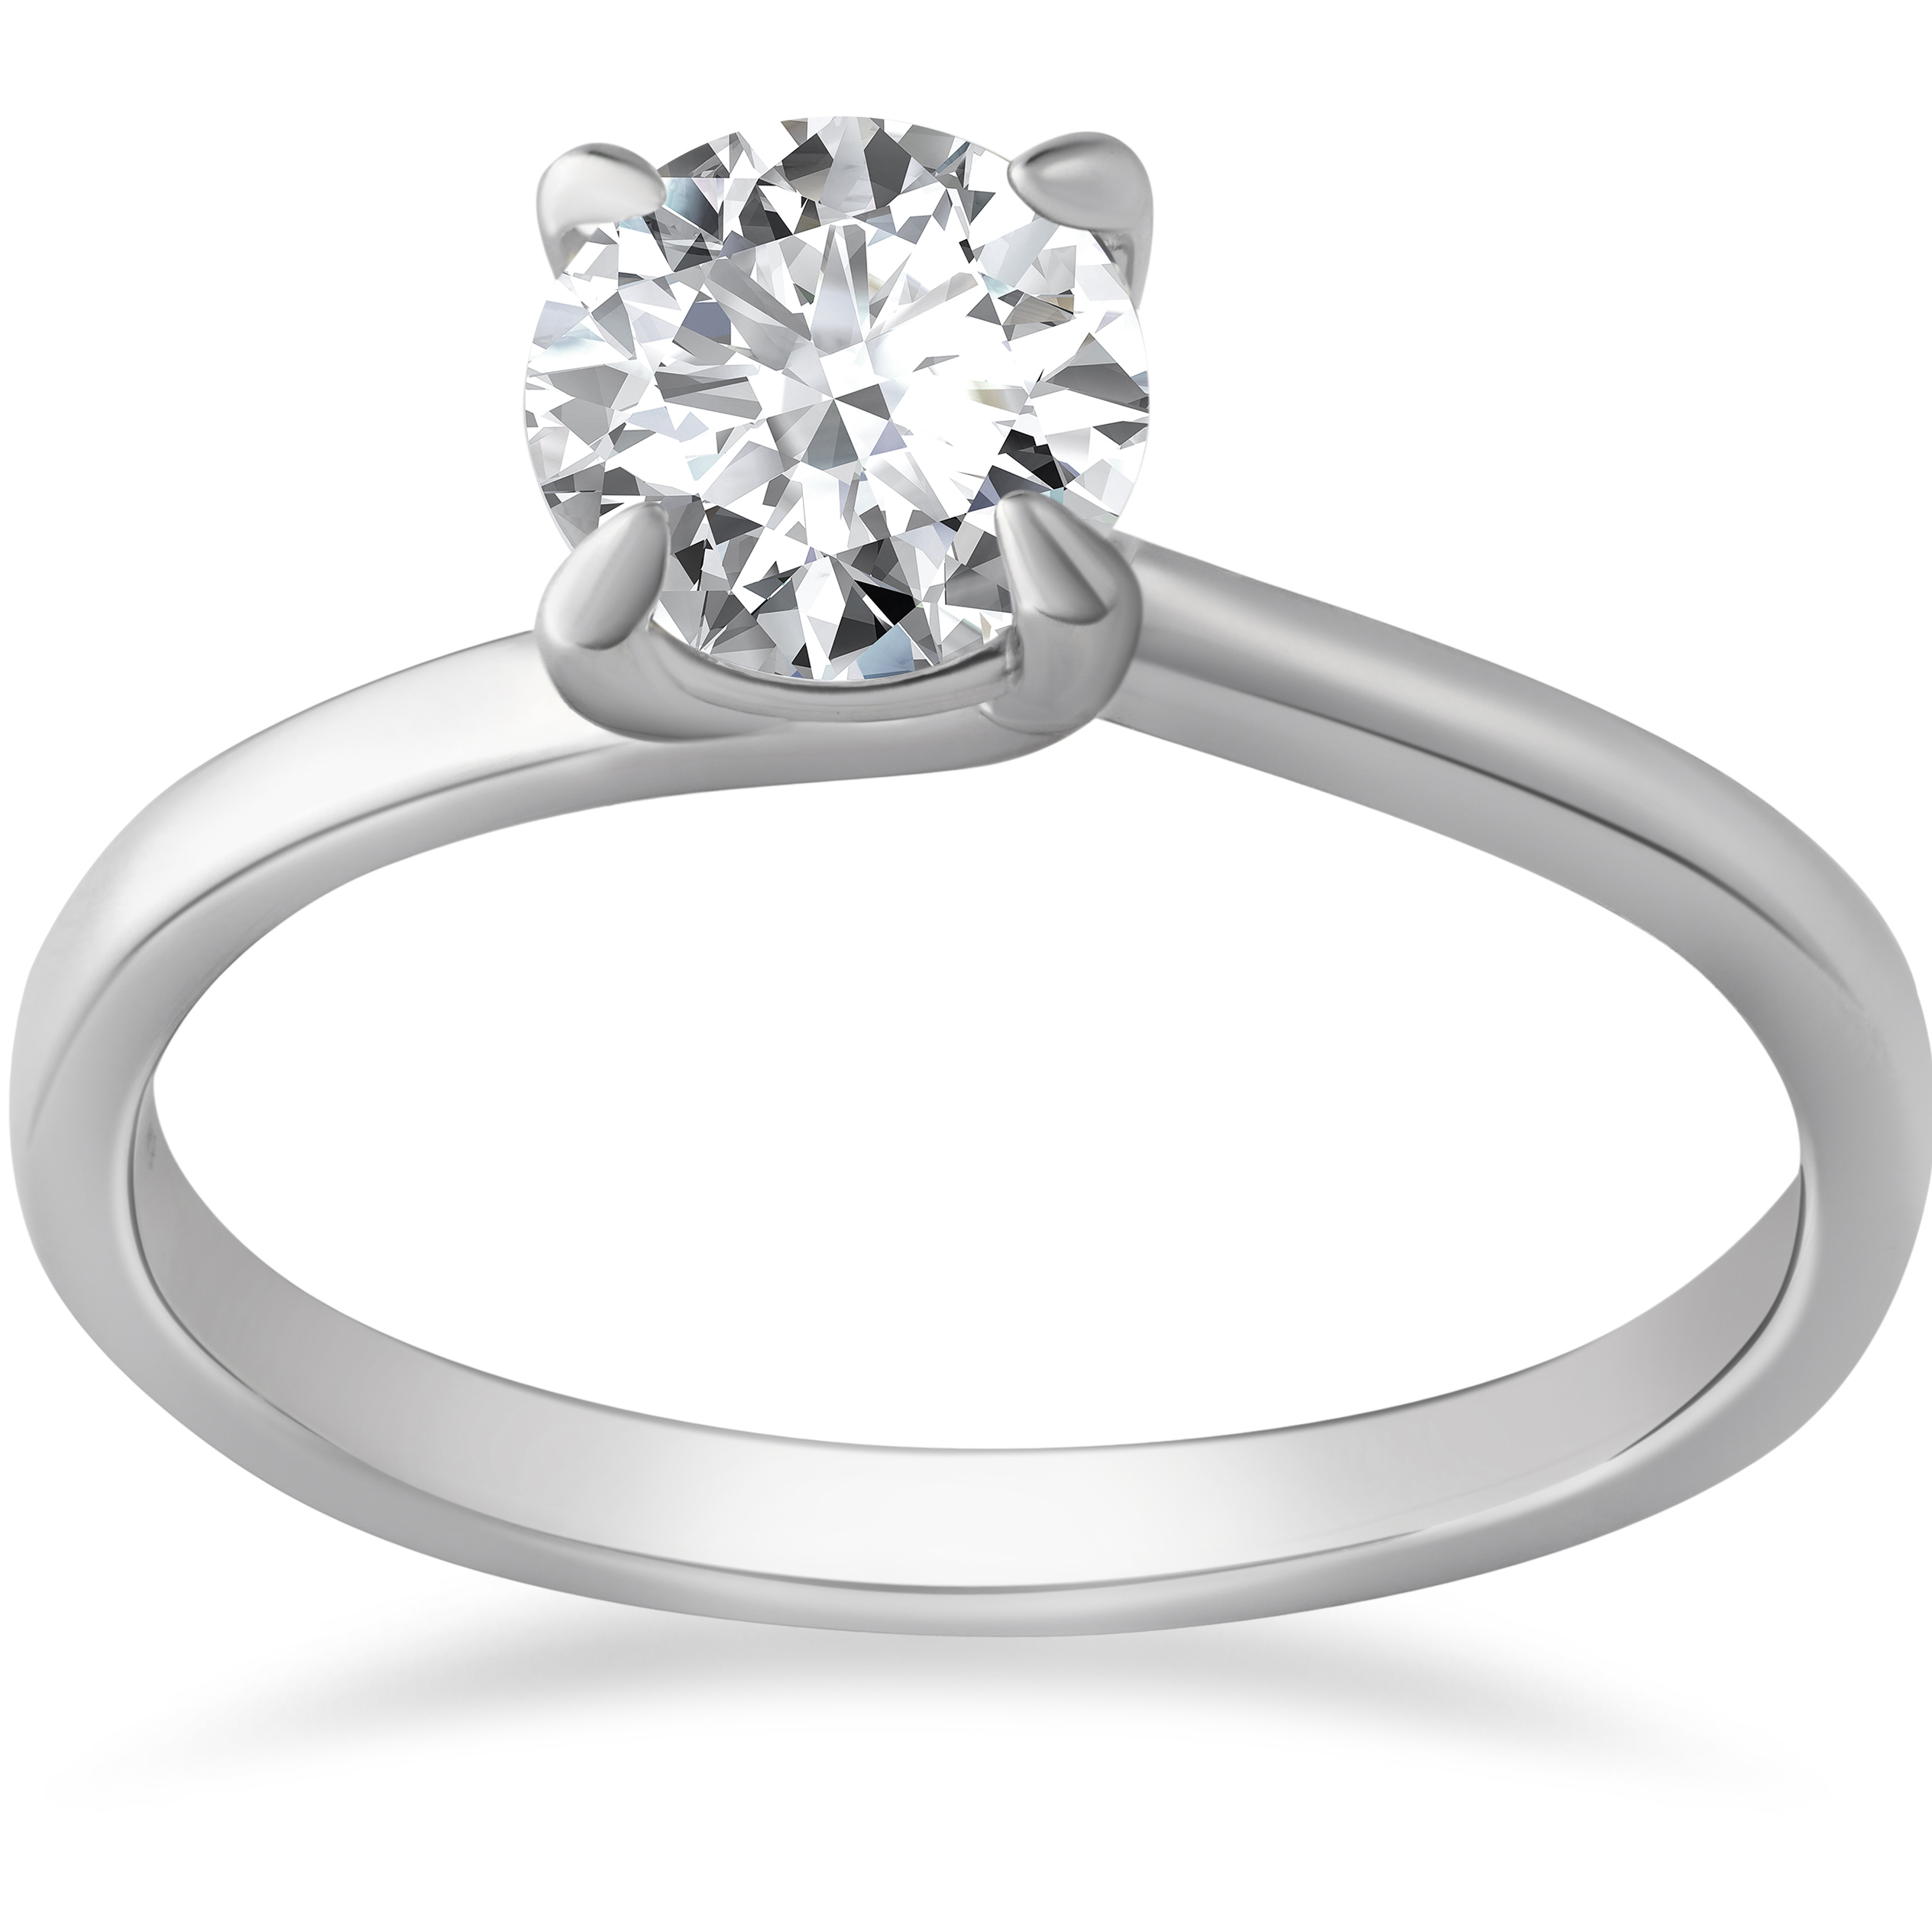 1 Ct Diamond Solitaire Engagement Ring 14k White Gold Round Cut Enhanced